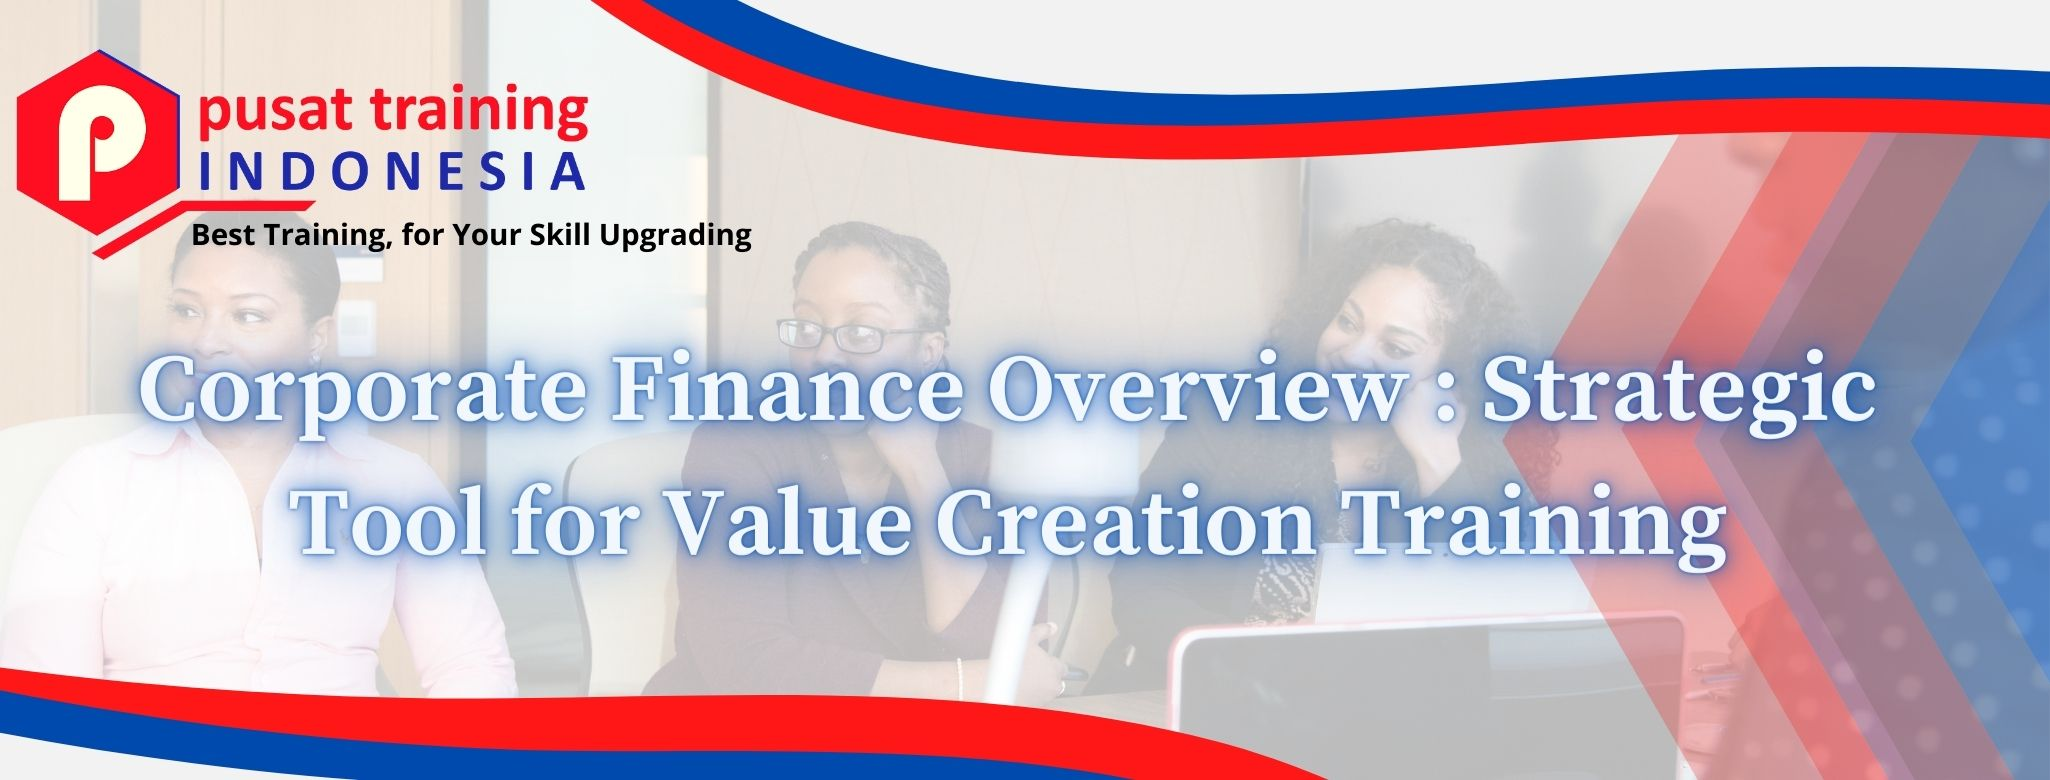 Corporate-Finance-Overview-Strategic-Tool-for-Value-Creation-Training